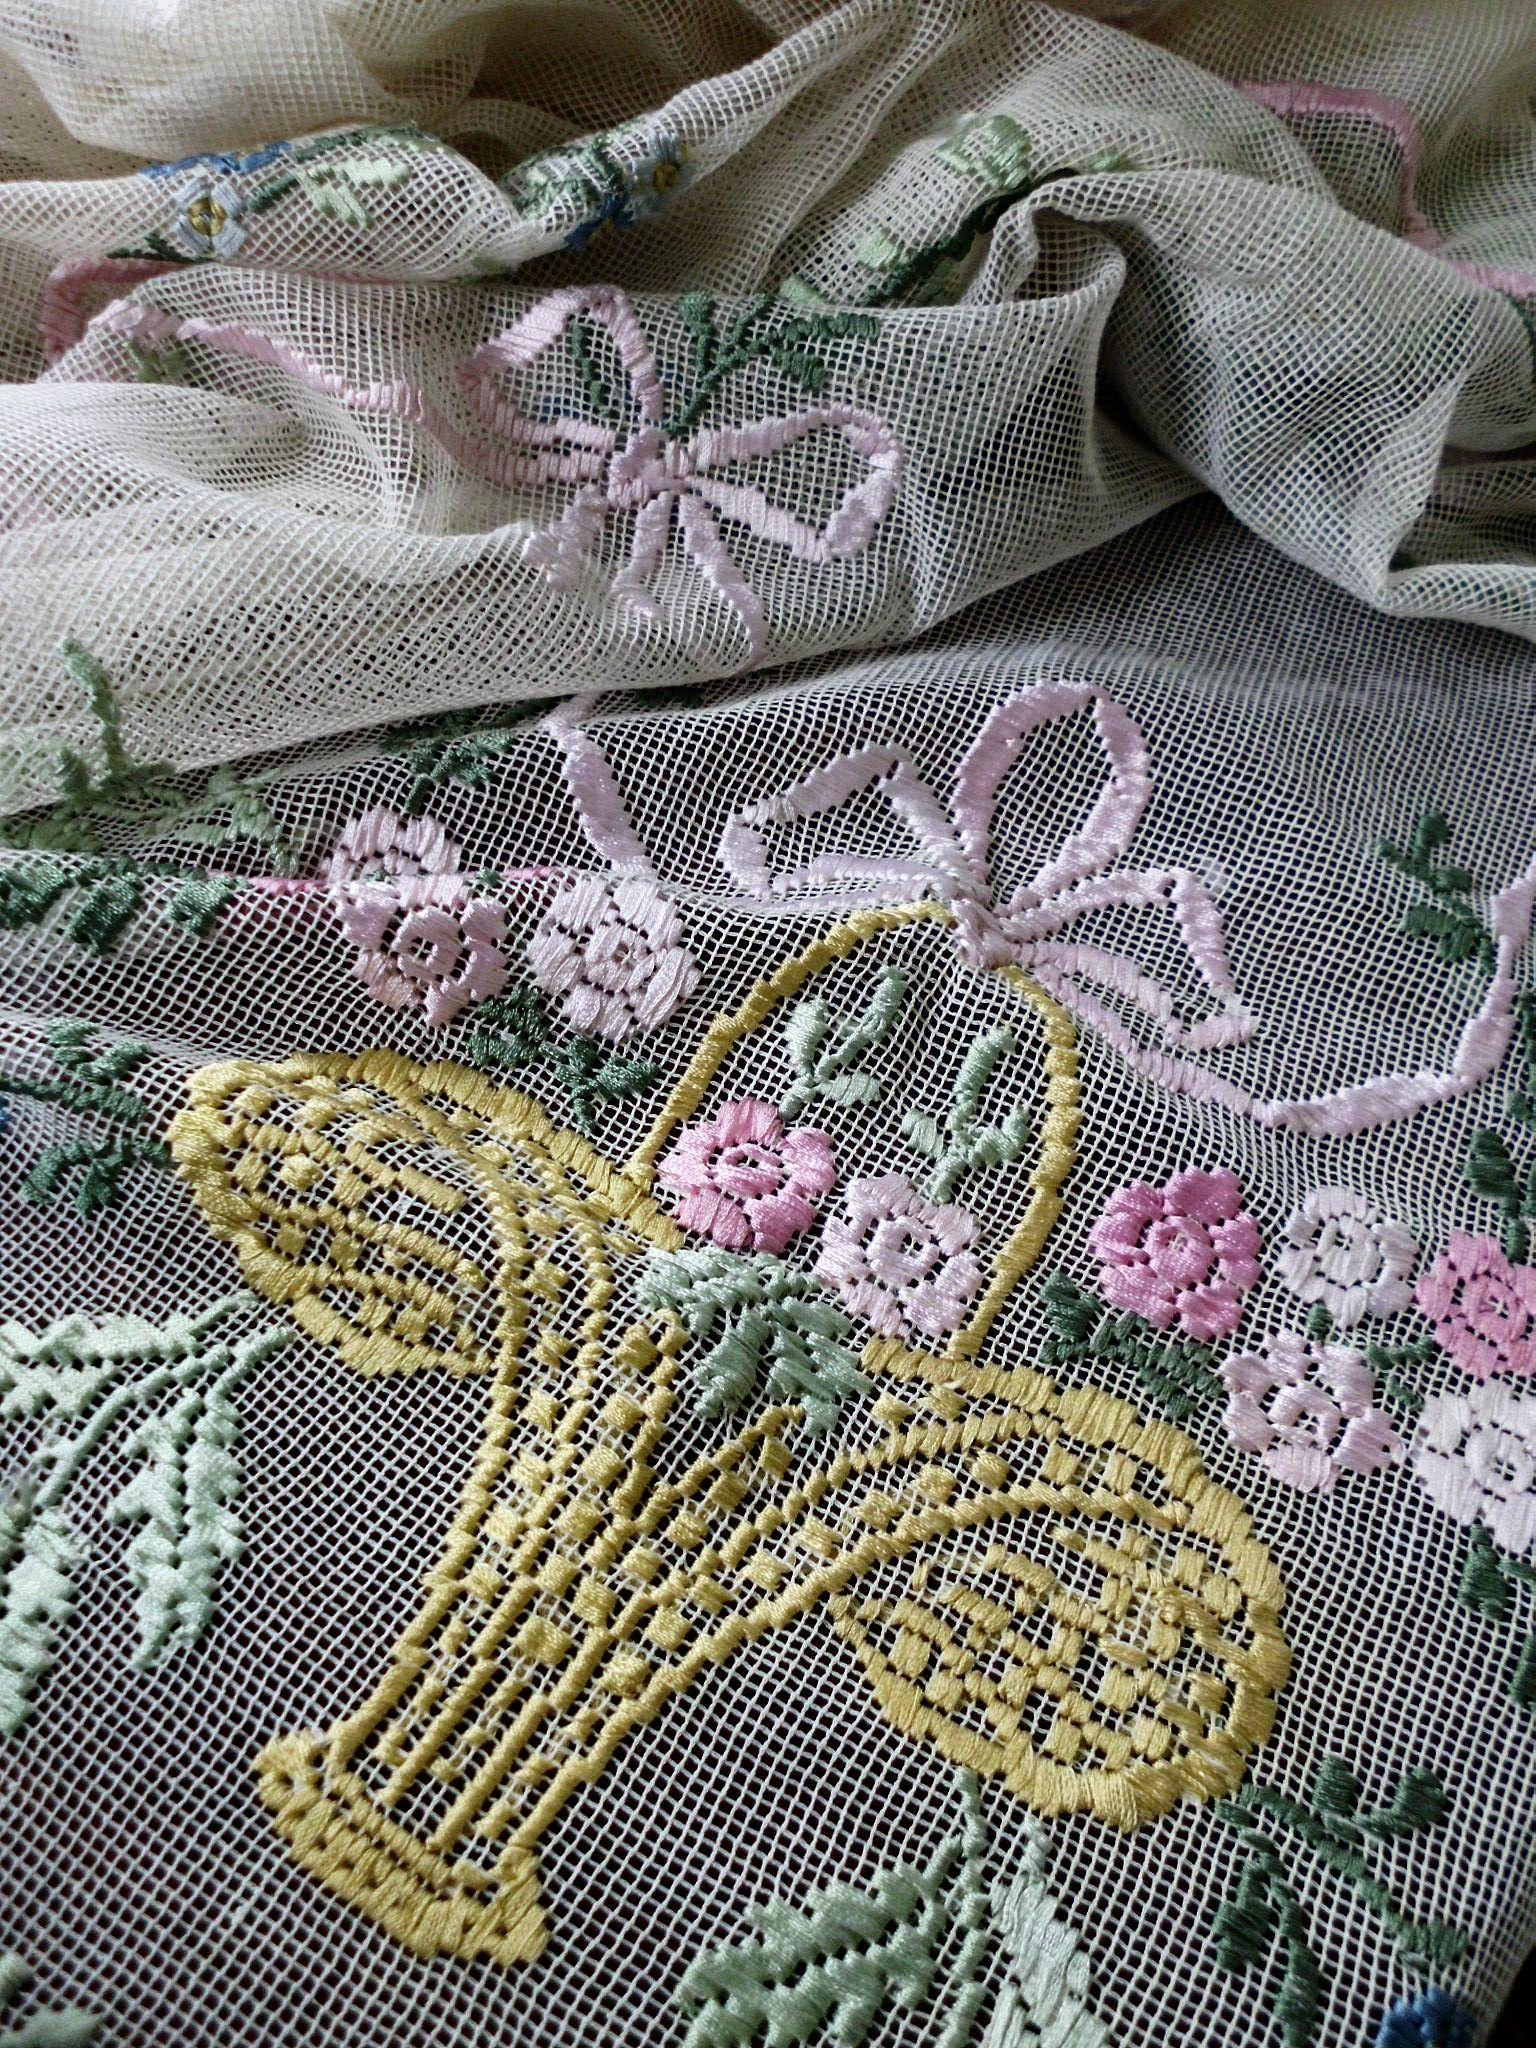 Ribbon embroidery bedspread designs - Vintage Ribbon Embroidery Net Lace Bedspread Coverlet W Roses Garlands And Baskets 88 X 103